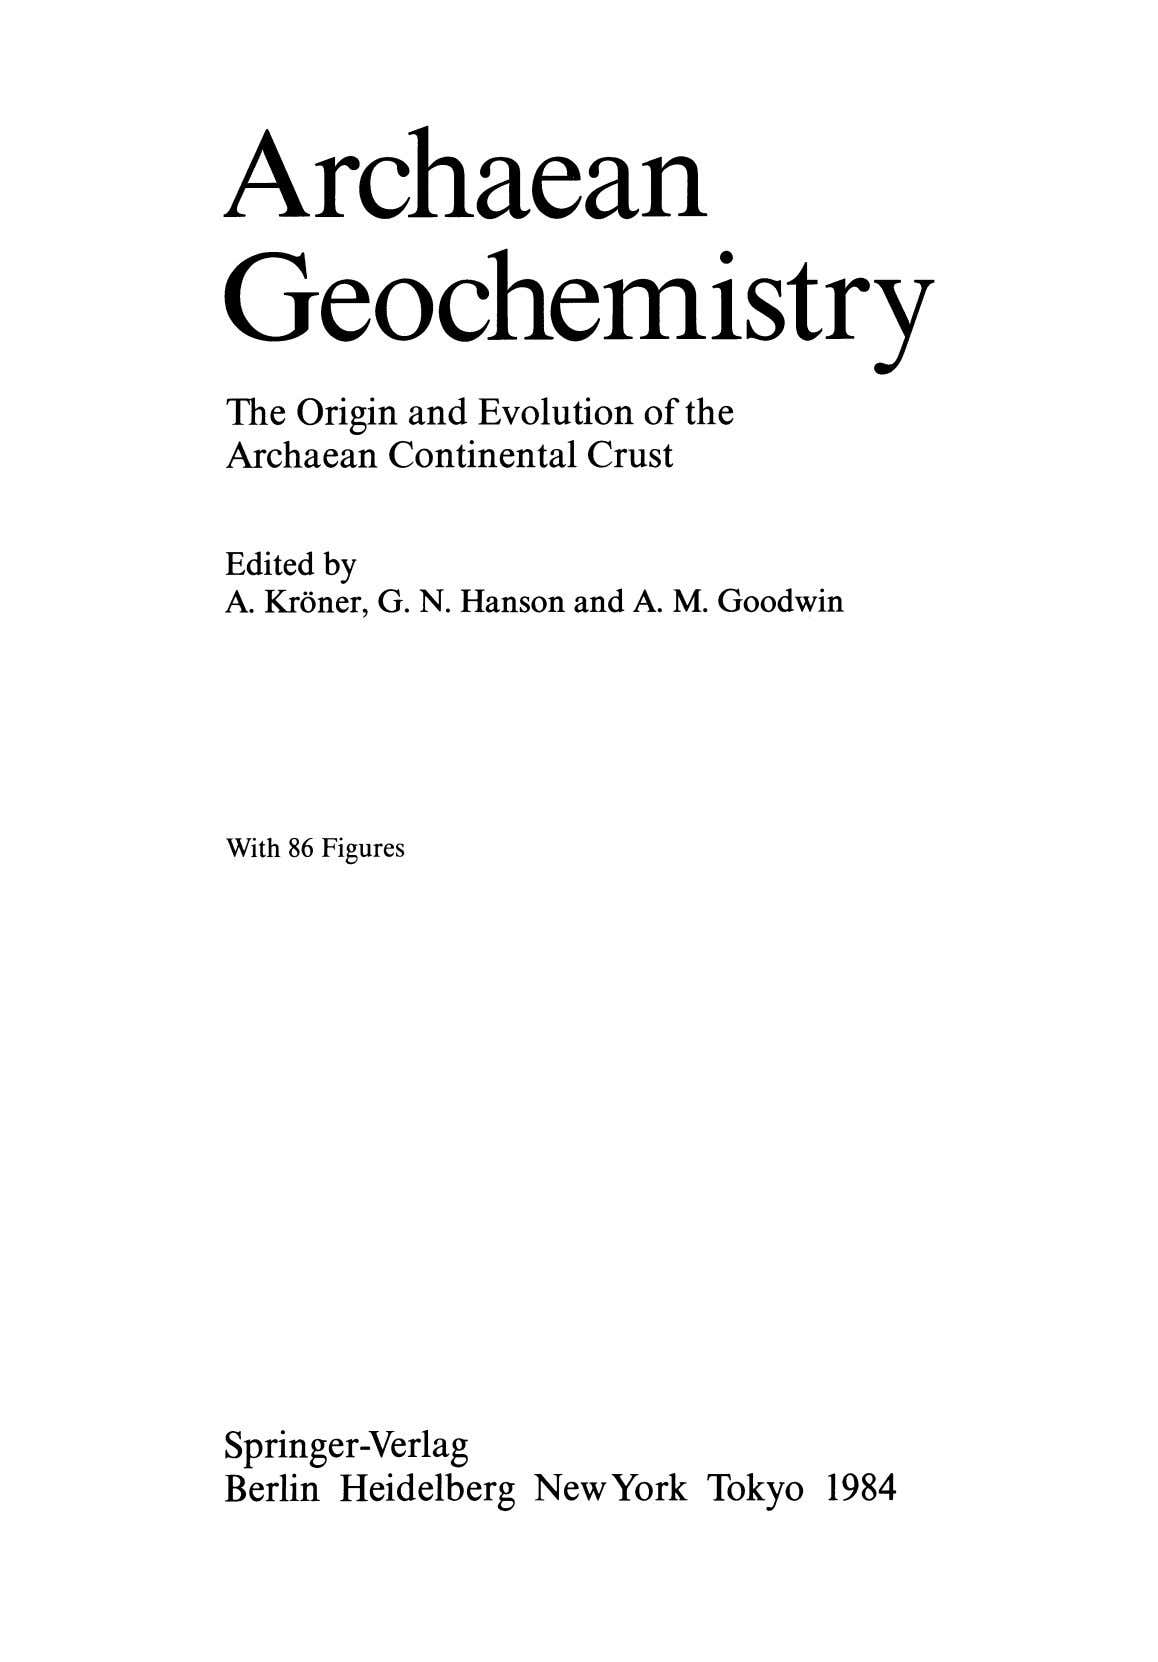 Archaean Geochemistry The Origin and Evolution of the Archaean Continental Crust Edited by A. Kroner, G.